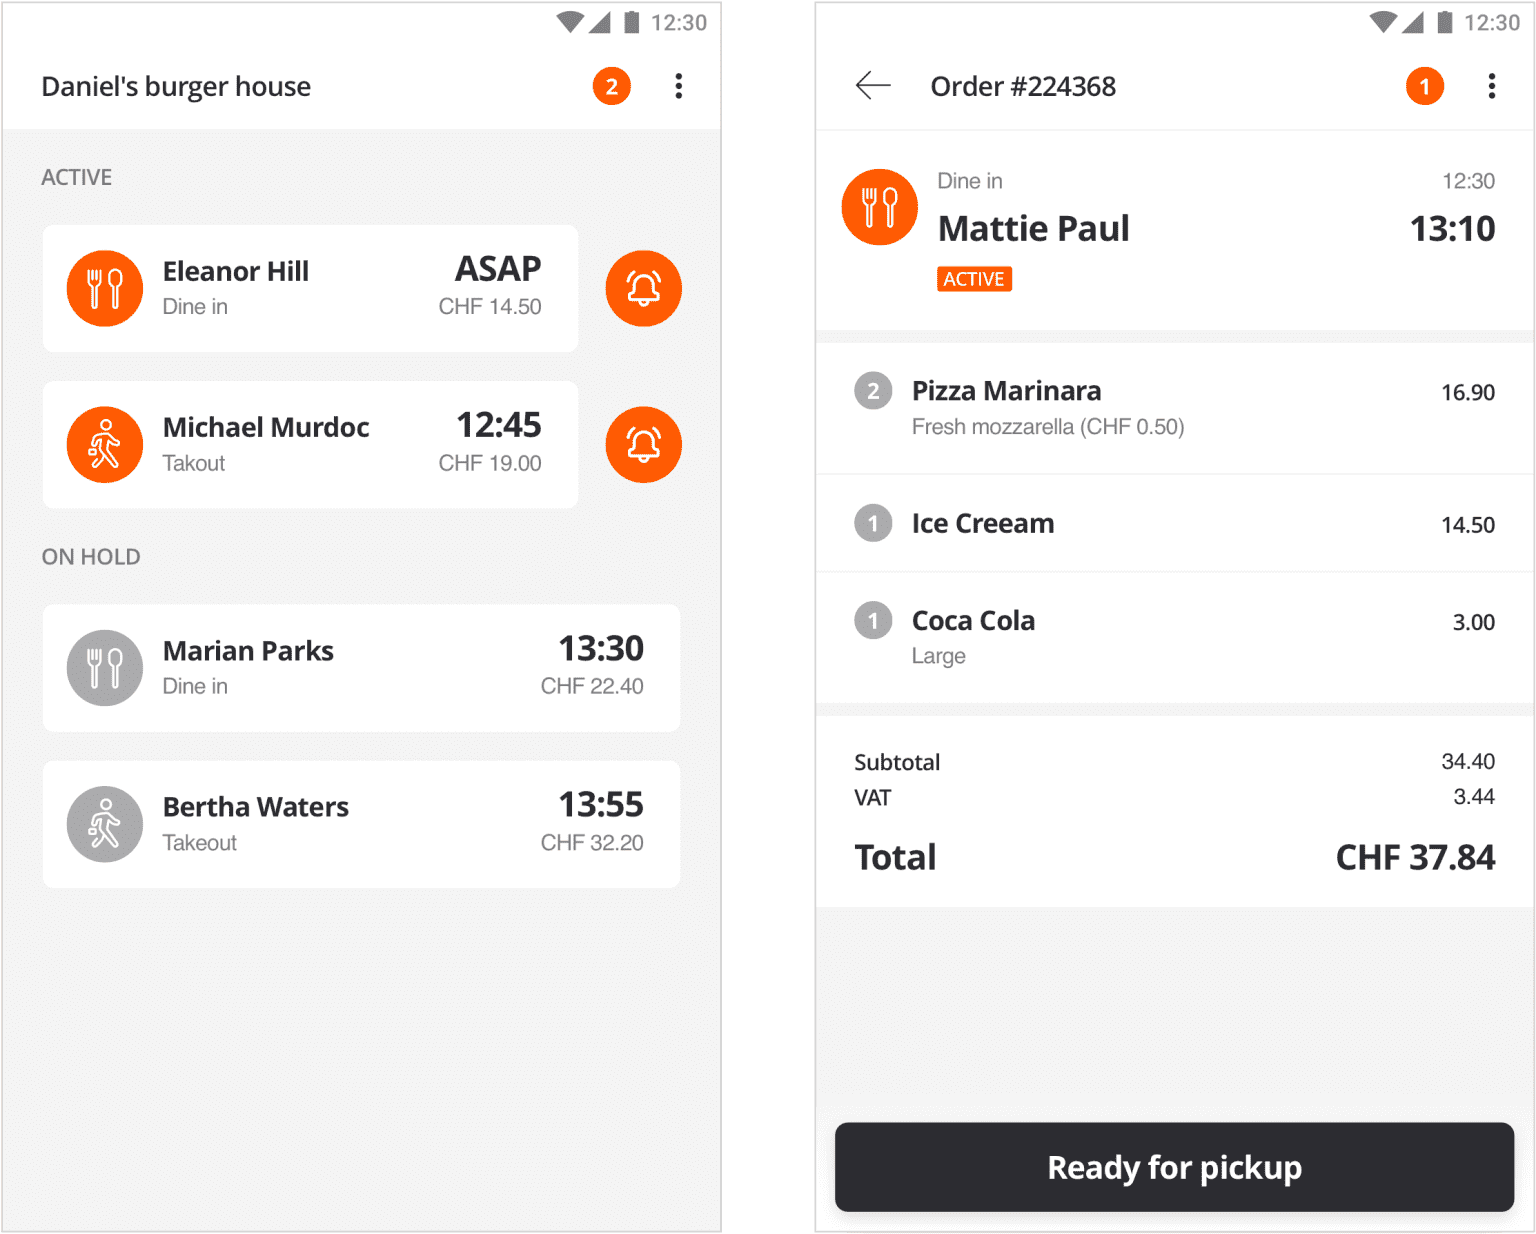 Designed an order reception and management solution for a hectic restaurant environment that accomodates multiple order types in a single, simple interface.